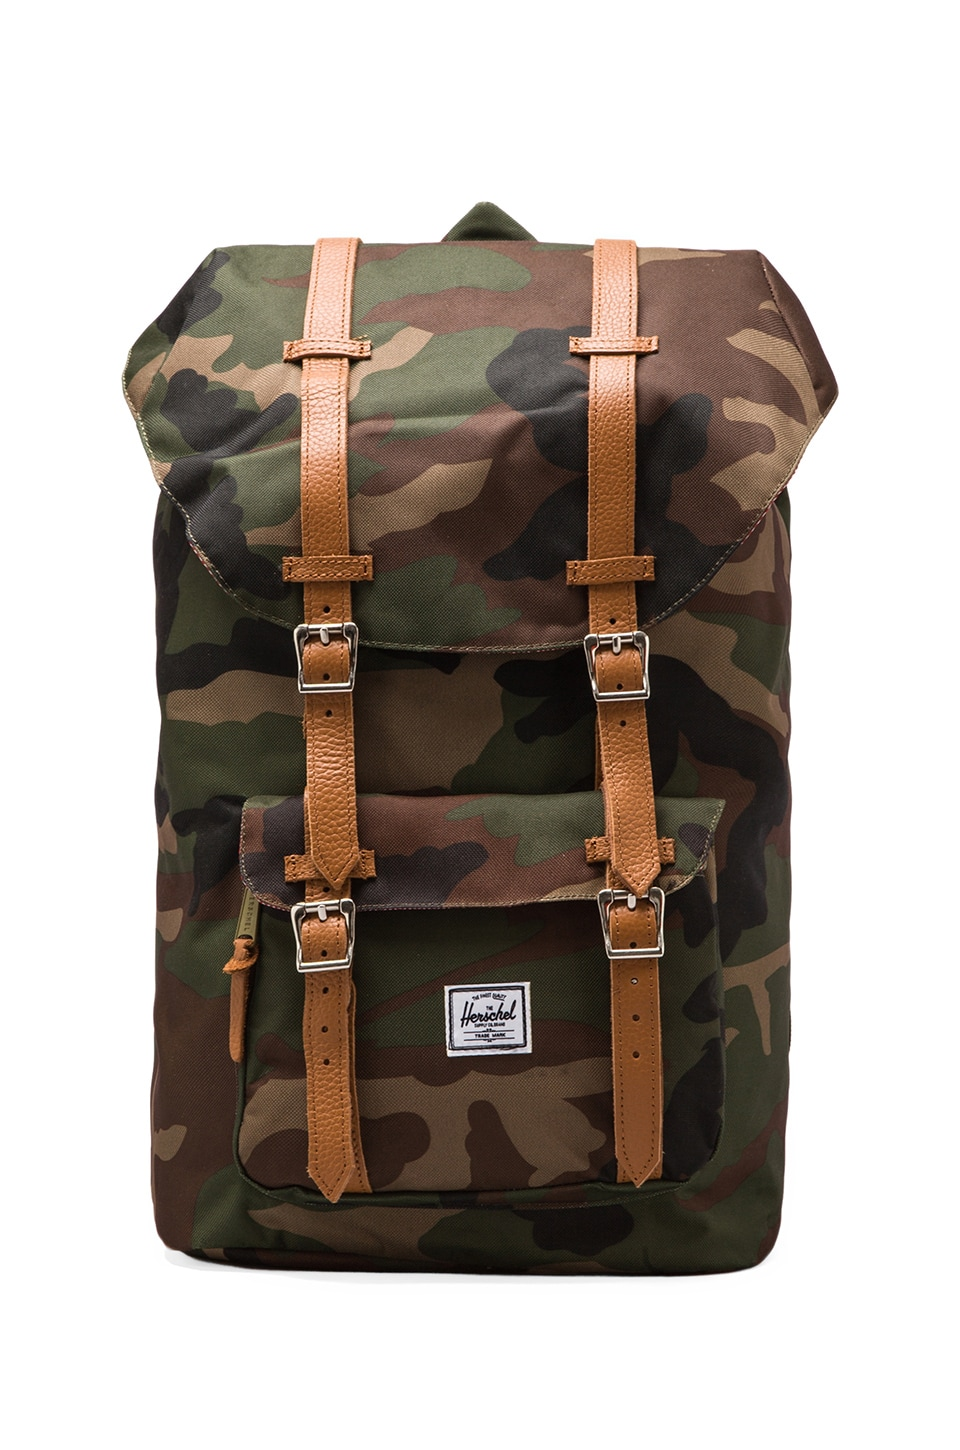 Herschel Supply Co. Sac à dos Little America en Camouflage